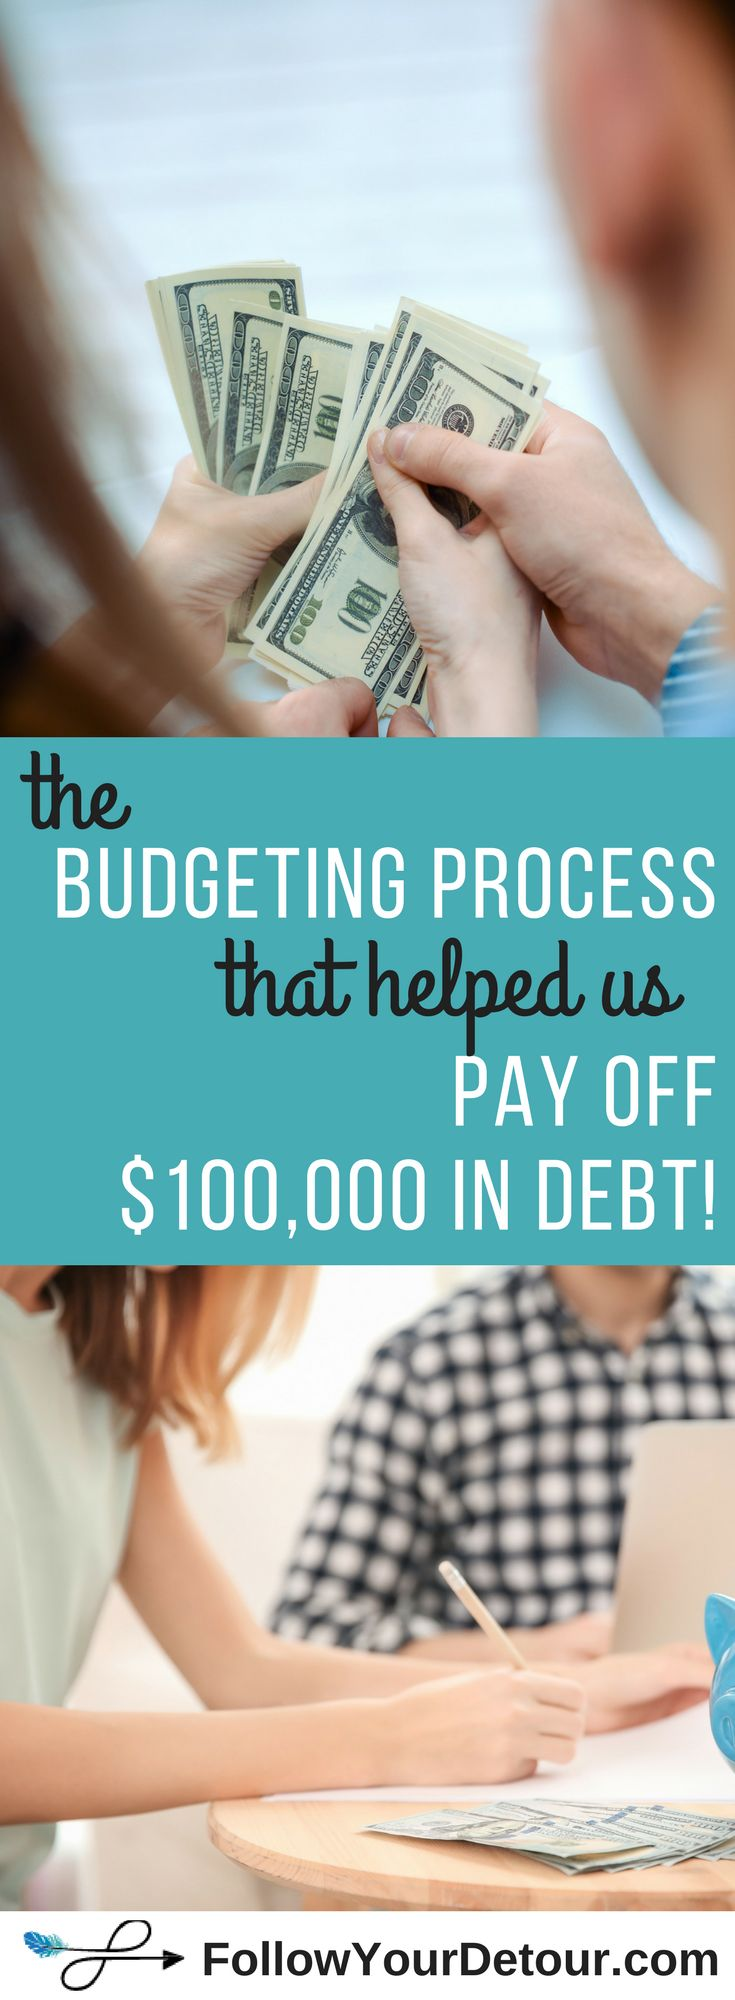 This travel couple shares the budgeting process they used to pay off $100,000 in debt, save $25,000, AND now travel full-time! They also created a #budgeting program and tool to teach YOU tips for how to get out of debt with an easy to use budgeting tool for couples and beginners. Living on a budget can be tough but its so worth it! #budget #debt #debtfree #finance  #travelmore #money #dreams #financialfreedom #savemoney